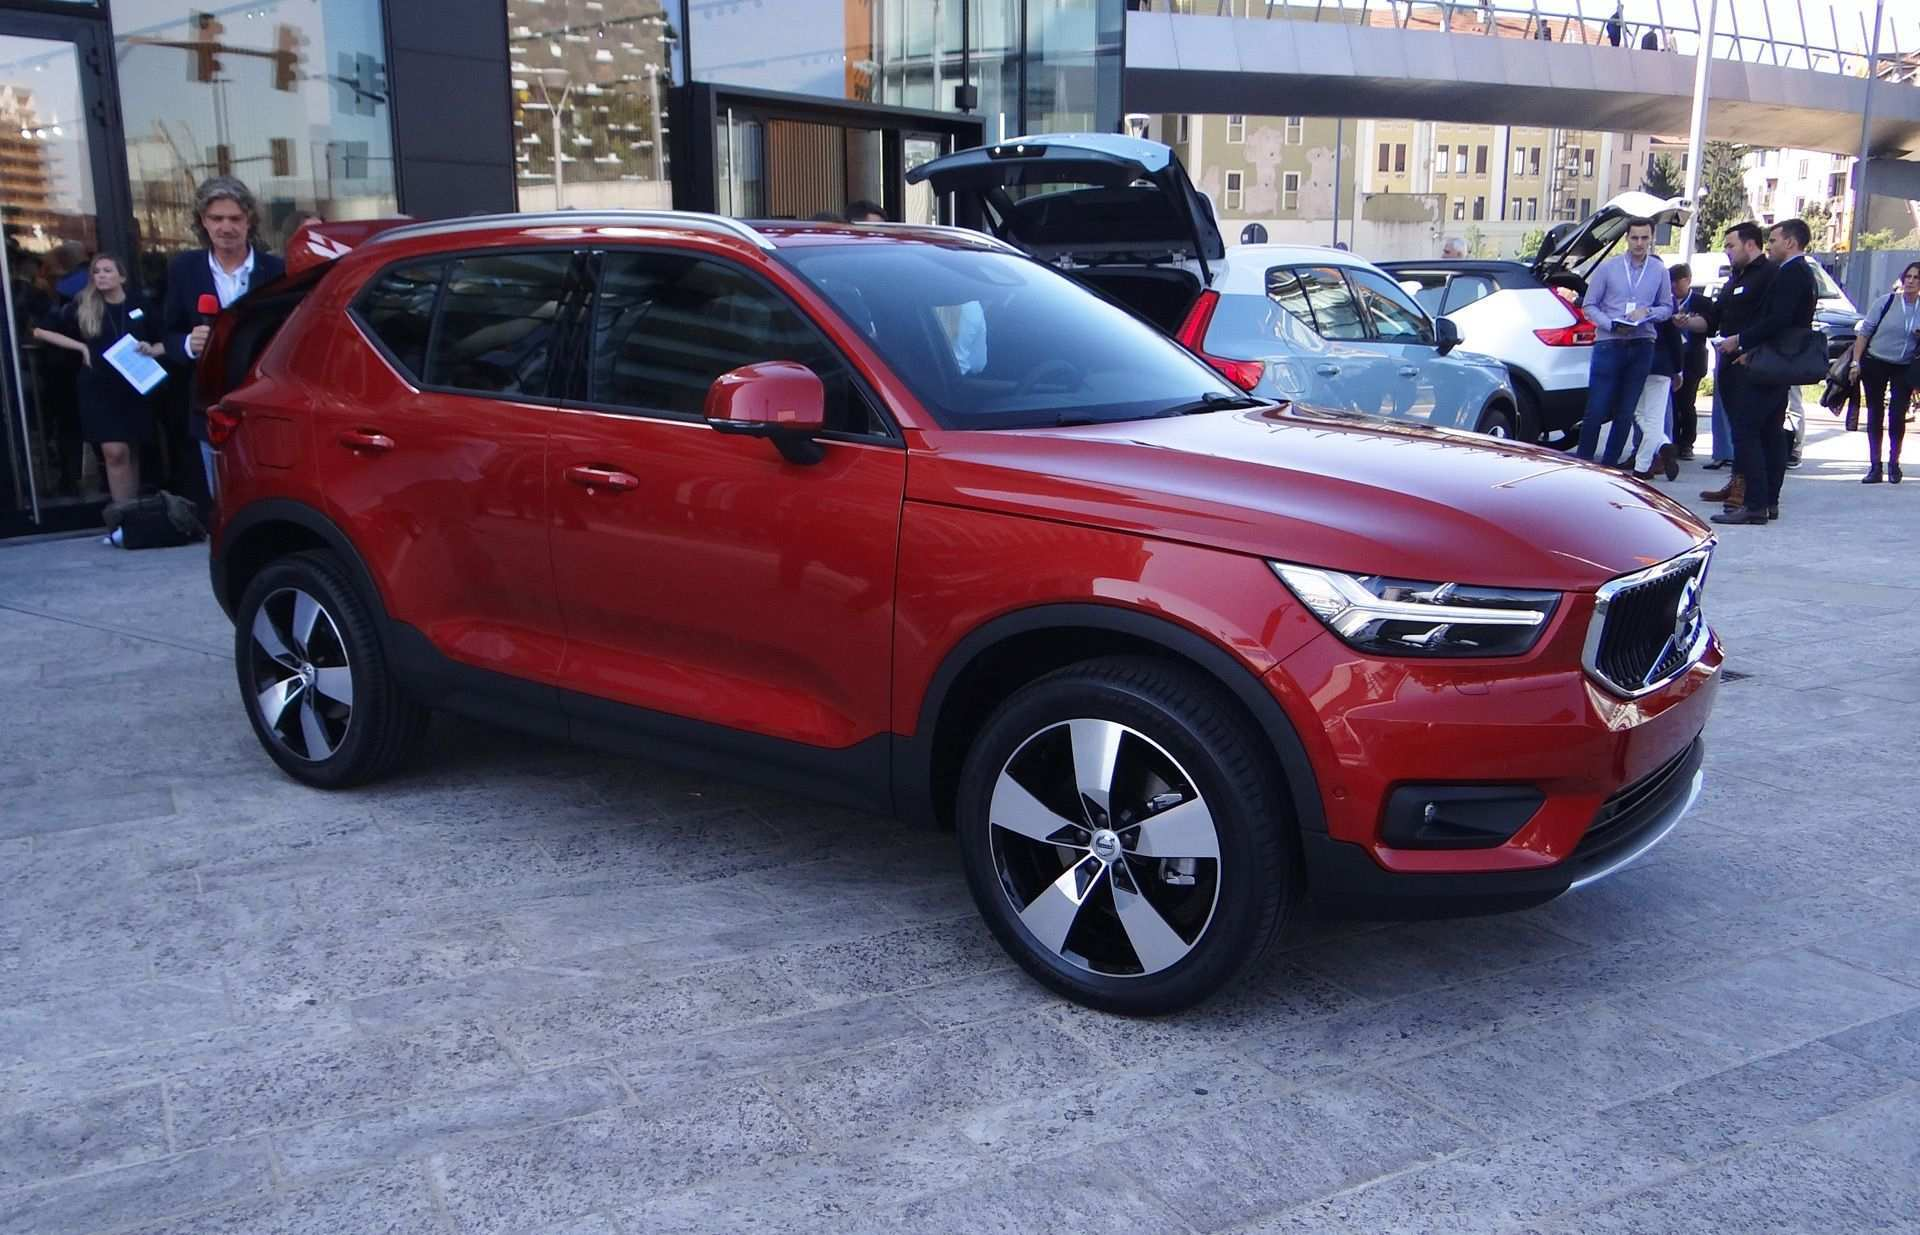 72 The Best Volvo Plug In 2019 Redesign Price And Review New Review with Best Volvo Plug In 2019 Redesign Price And Review